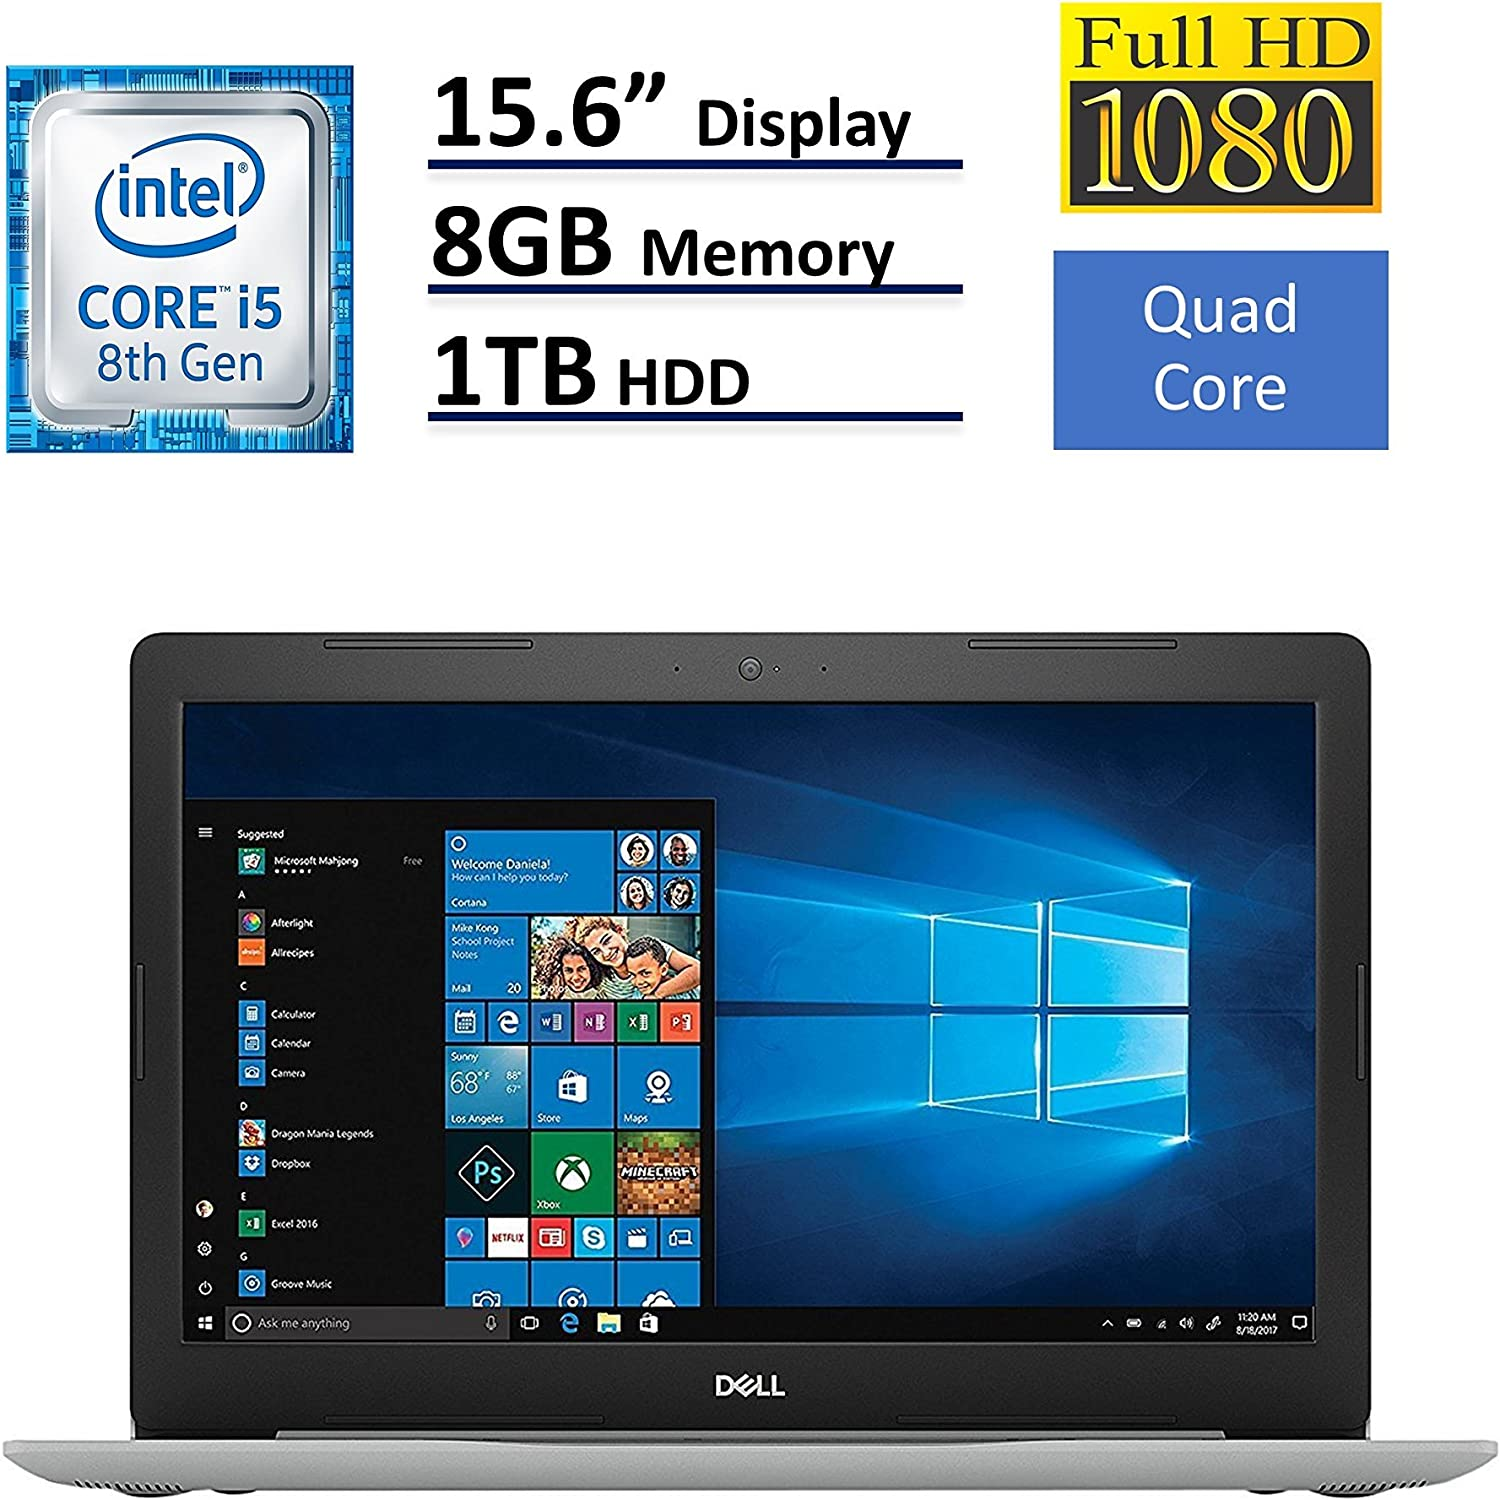 2018 Dell Inspiron 15 5000 15.6 inch Full HD Touchscreen Backlit Keyboard Laptop PC, Intel Core i5-8250U Quad-Core, 8GB DDR4, 1TB HDD, DVD RW, Bluetooth 4.2, WIFI, Windows 10 (Renewed)